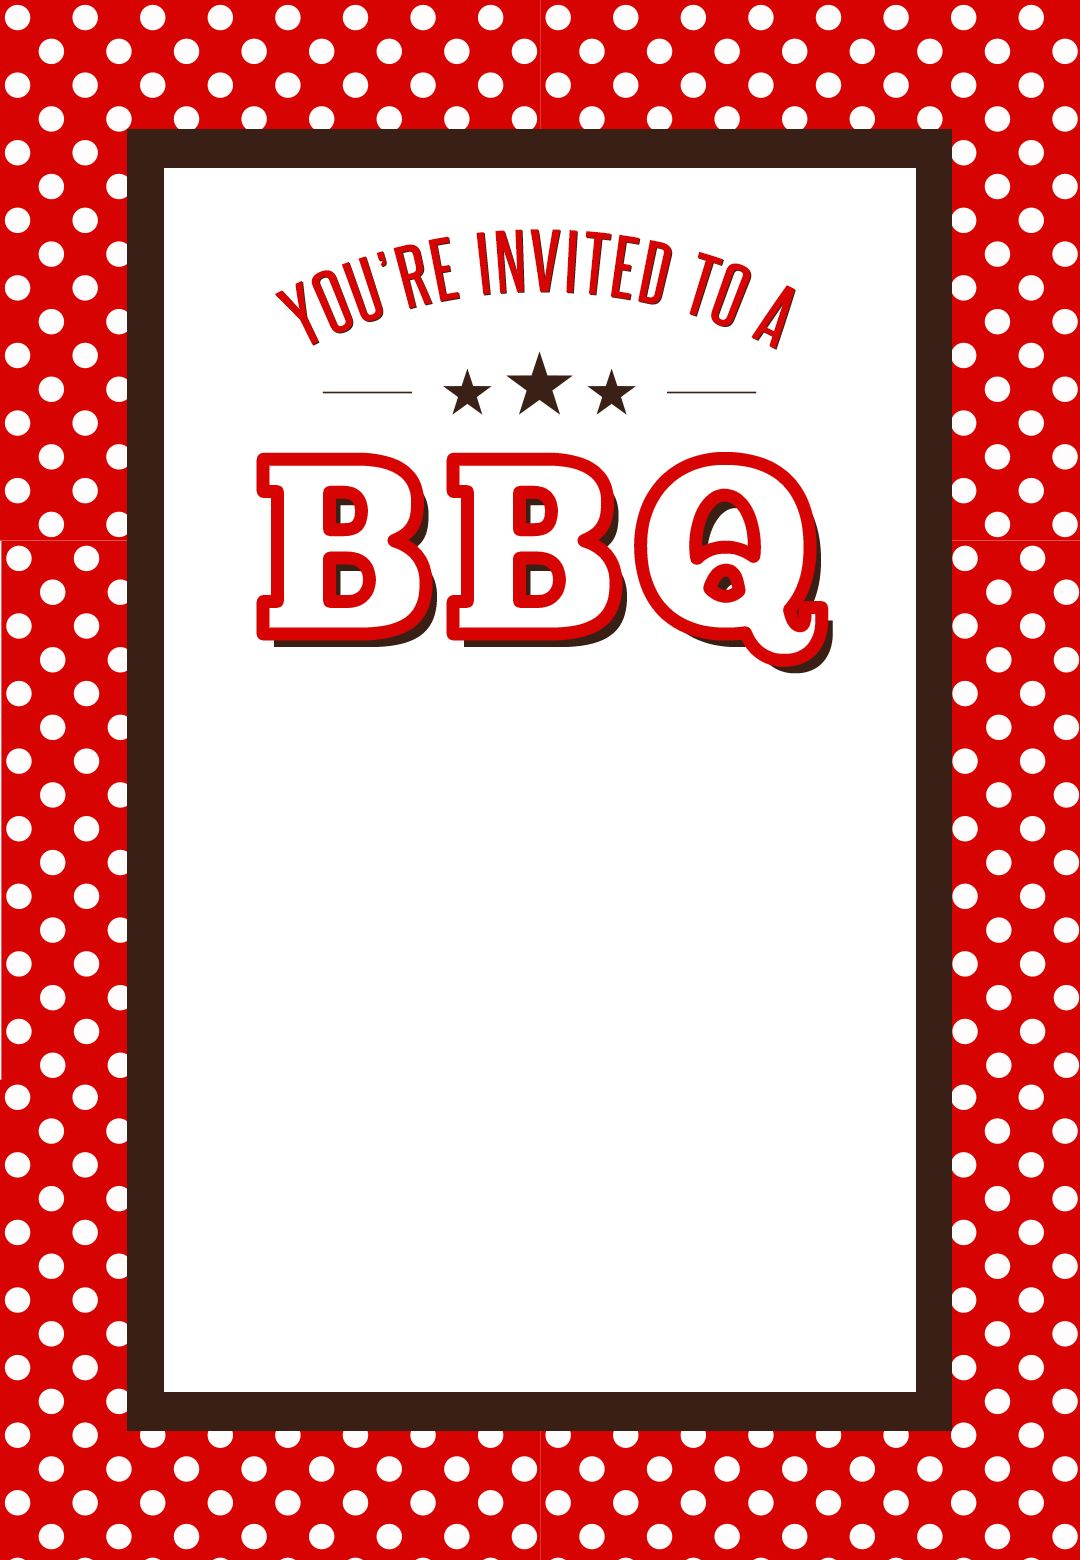 BBQ Party #Invitation Free Printables | BBQ Party Ideas | Pinterest ...